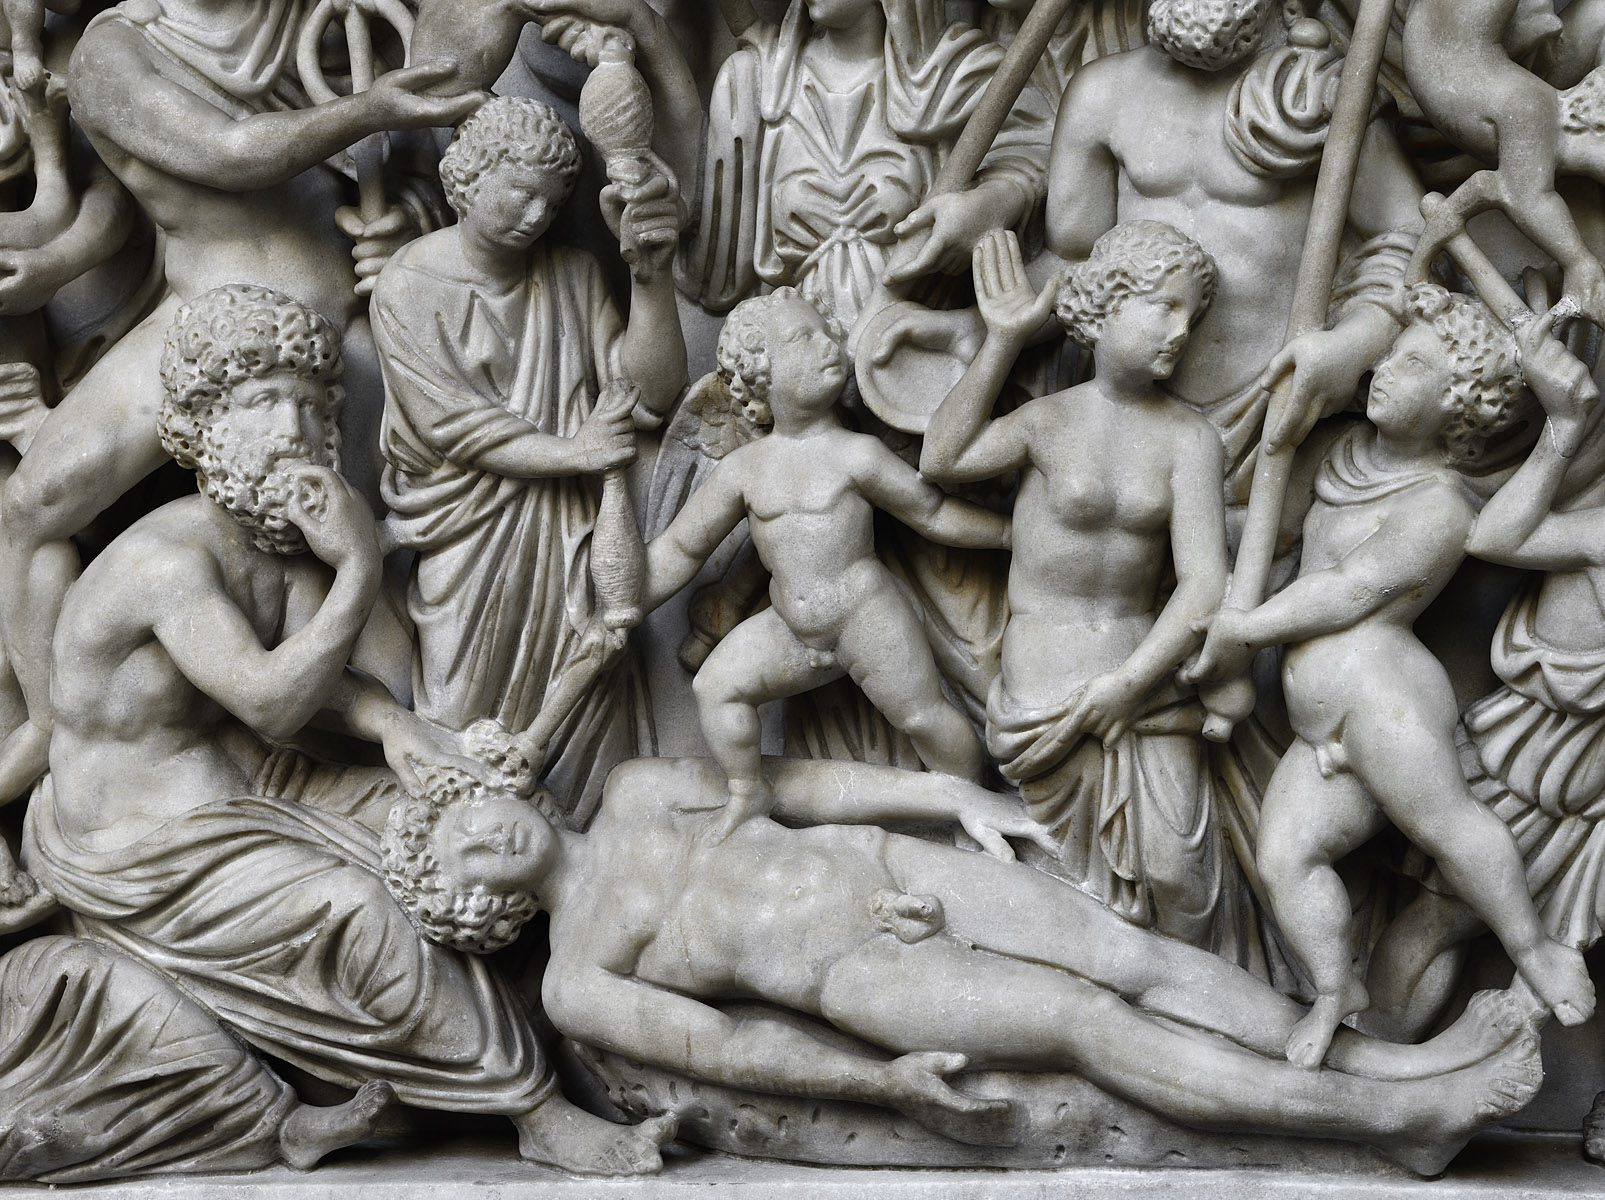 Sarcophagus with scenes of the myth of Prometheus and the  creation of man (close-up). Marble. 4th cent. CE. Inv. No. 6705. Naples, National Archaeological Museum